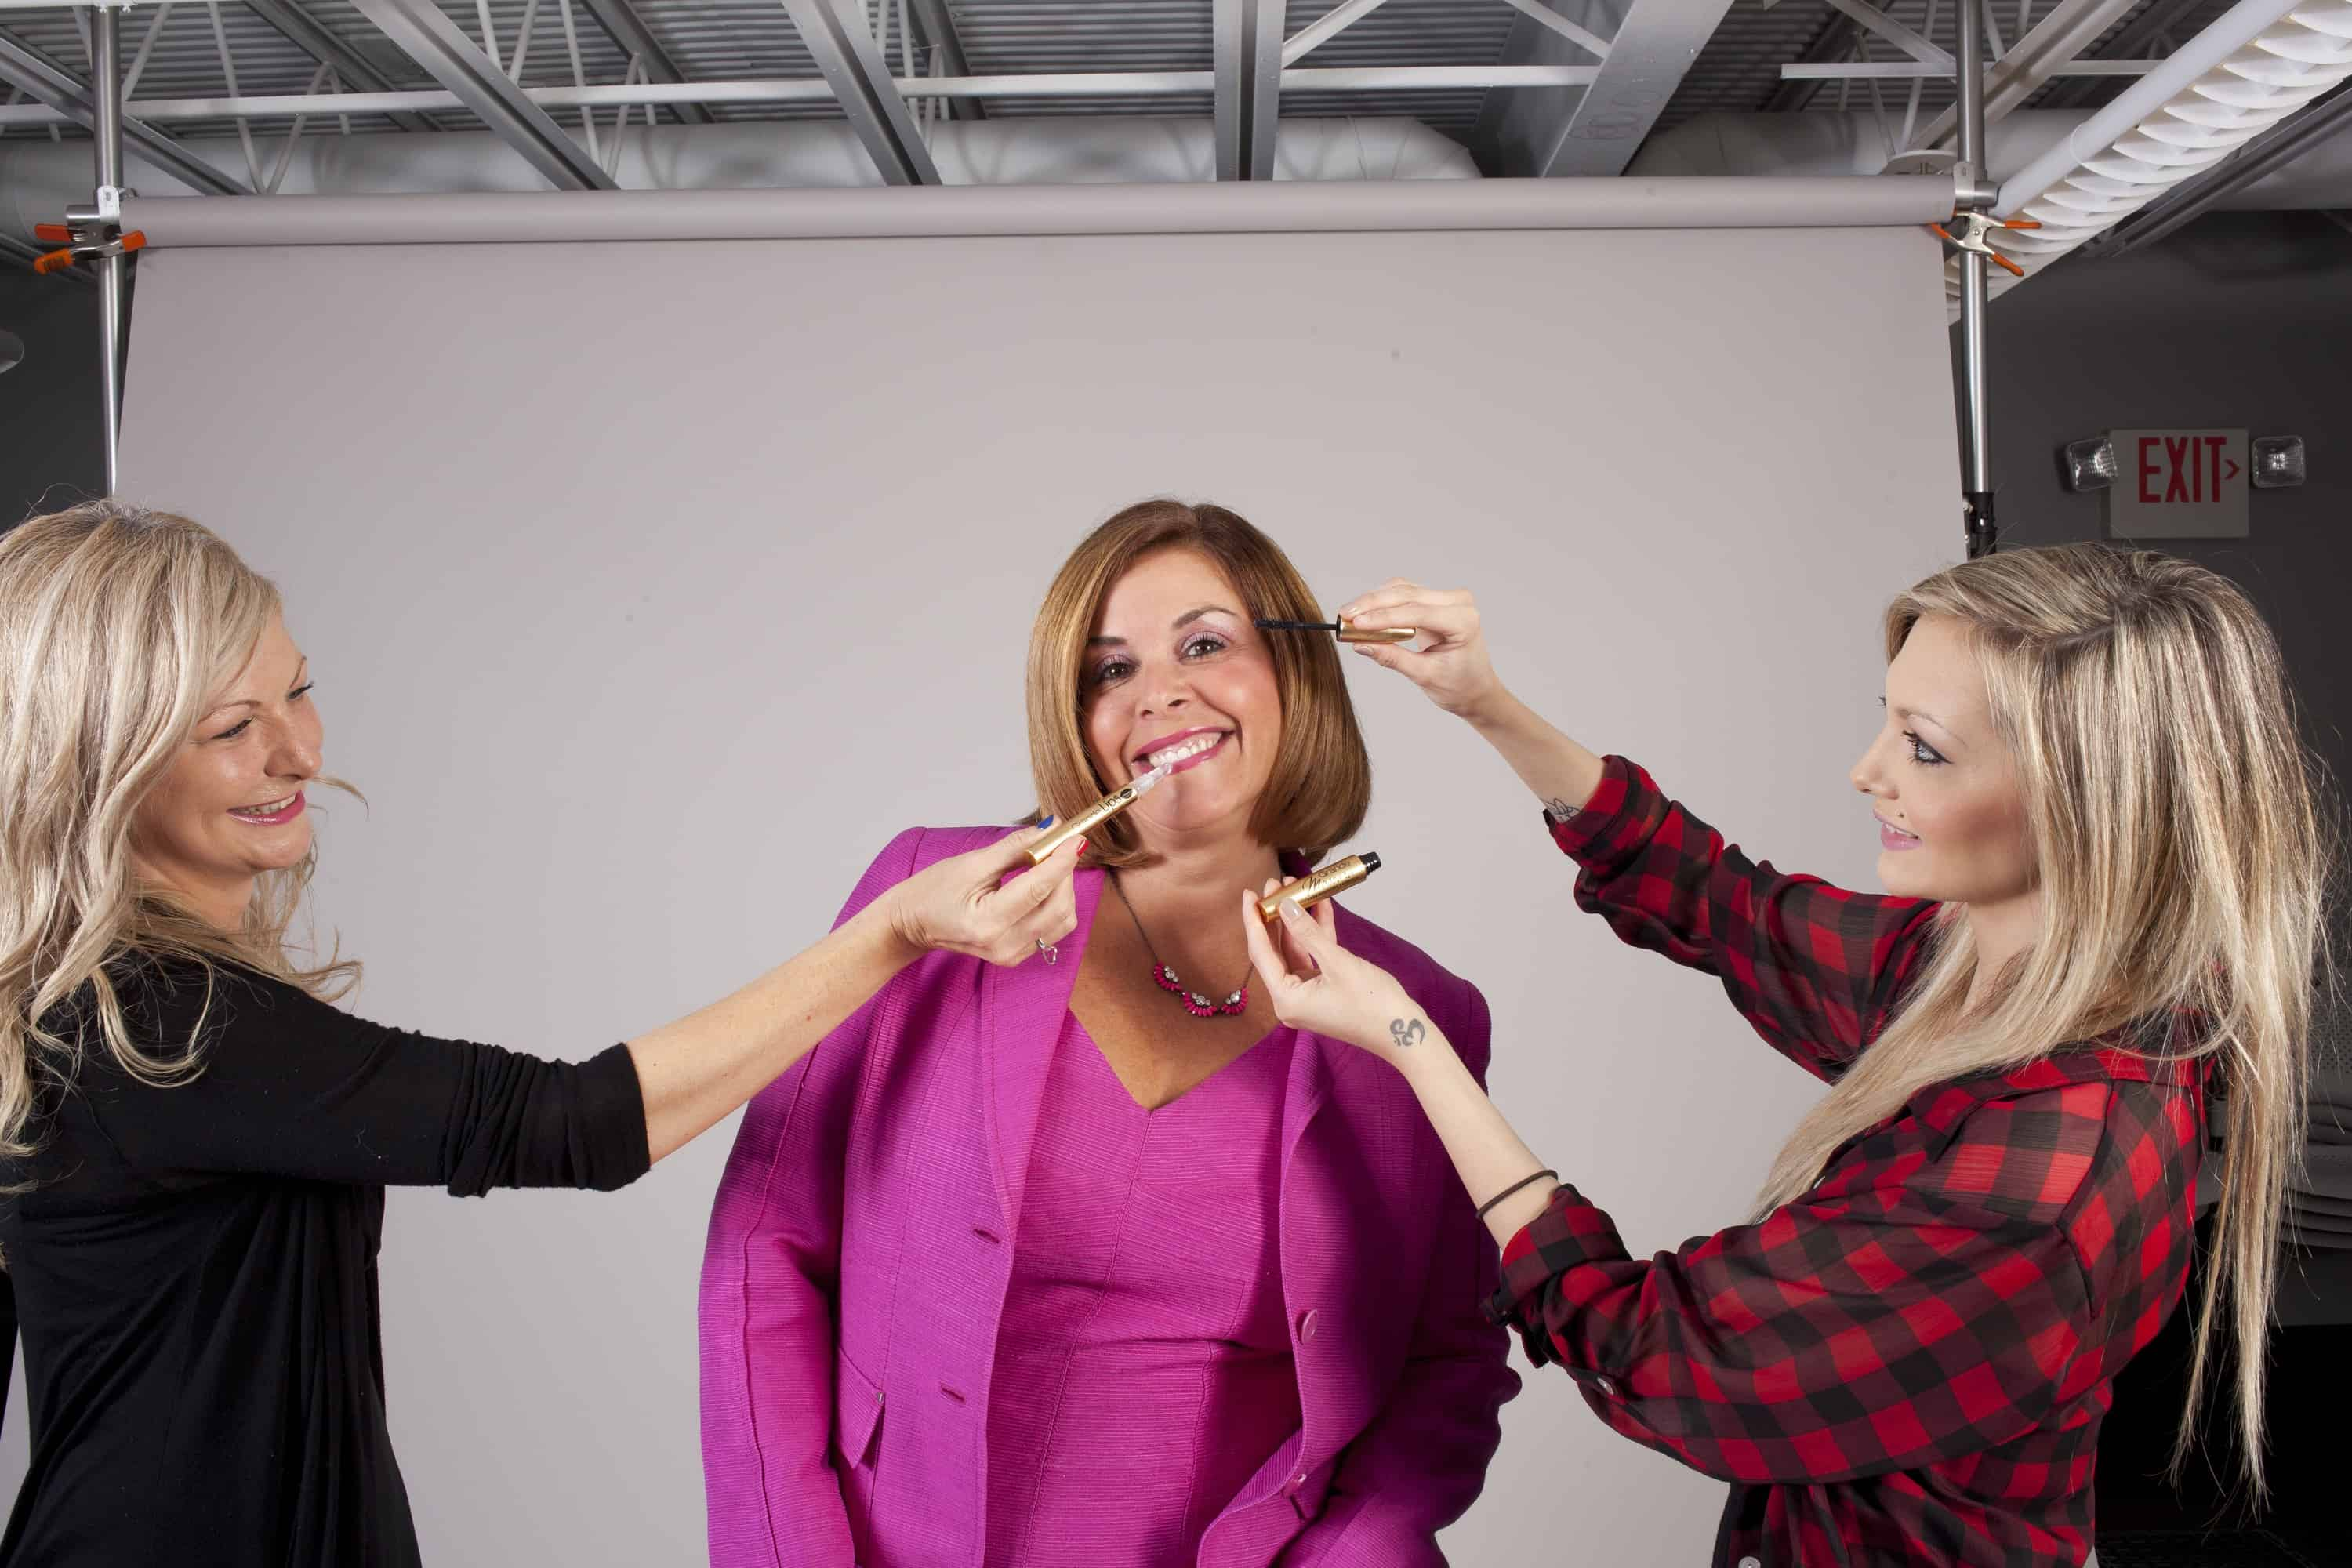 Alicia Grande, CEO of Grande Cosmetics, created a beauty line with clinically proven formulas and natural ingredients that leave your skin healthy and showing the naturally beautiful side of you.